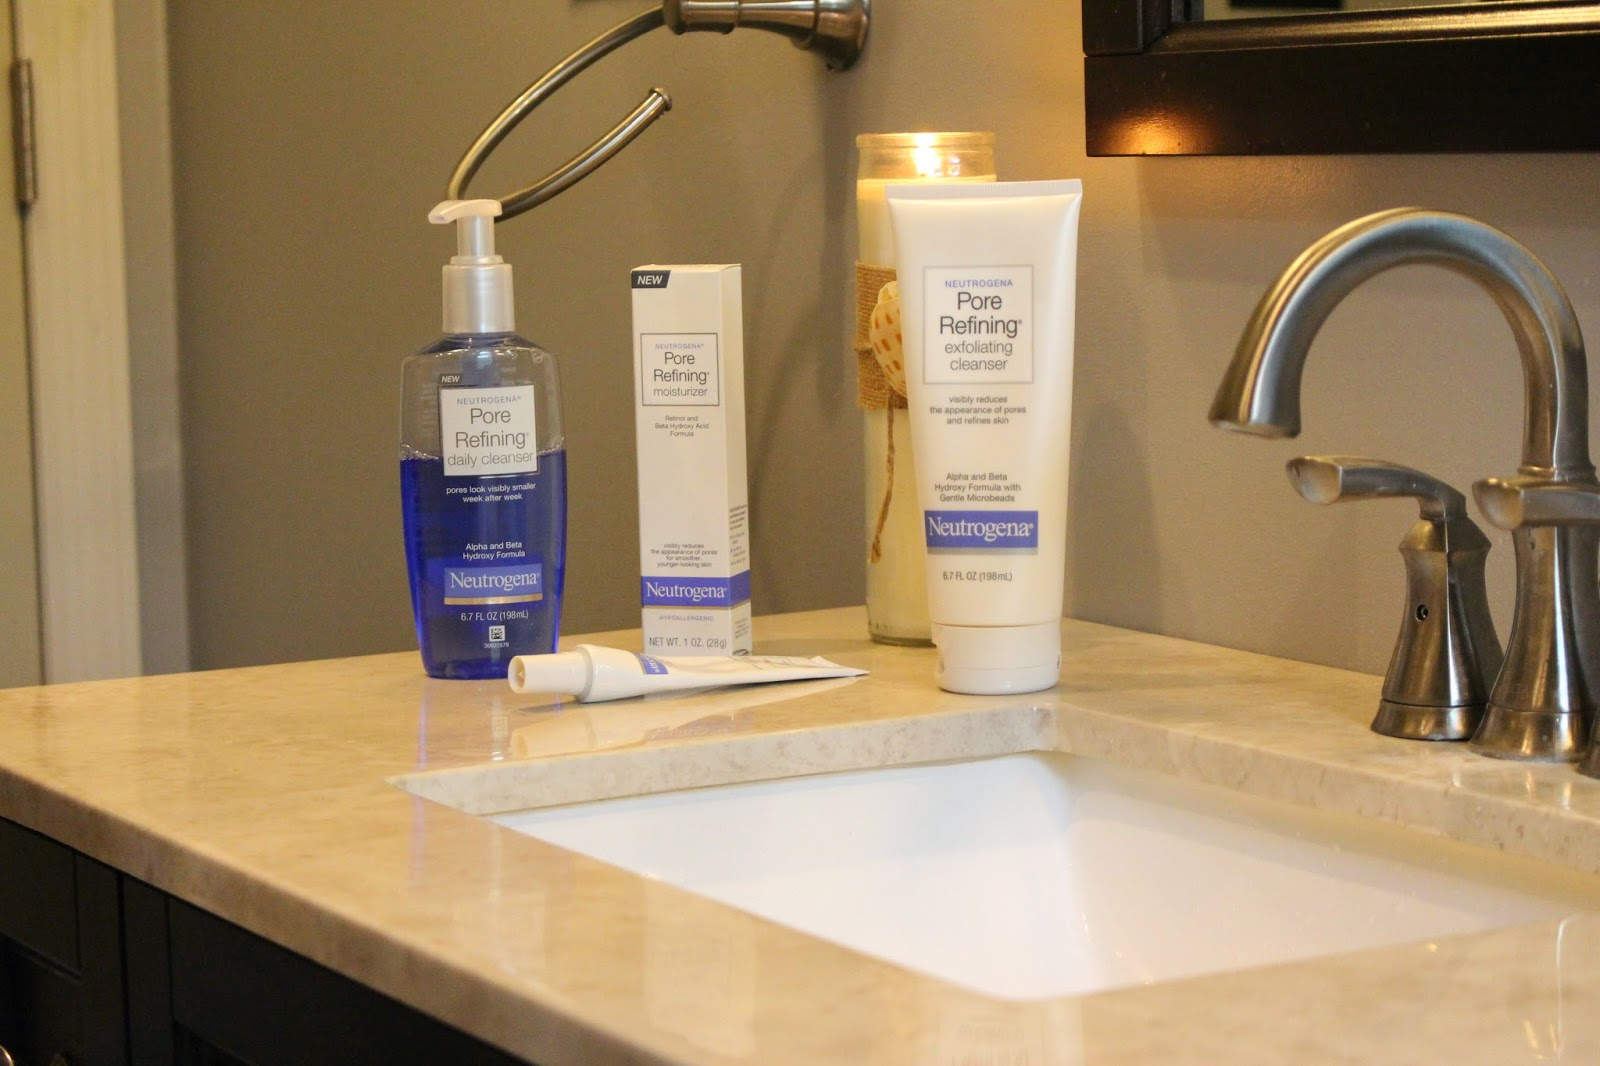 neutrogena pore refining line review, neutrogena pore refining cleanser, neutrogena anti-aging skin care